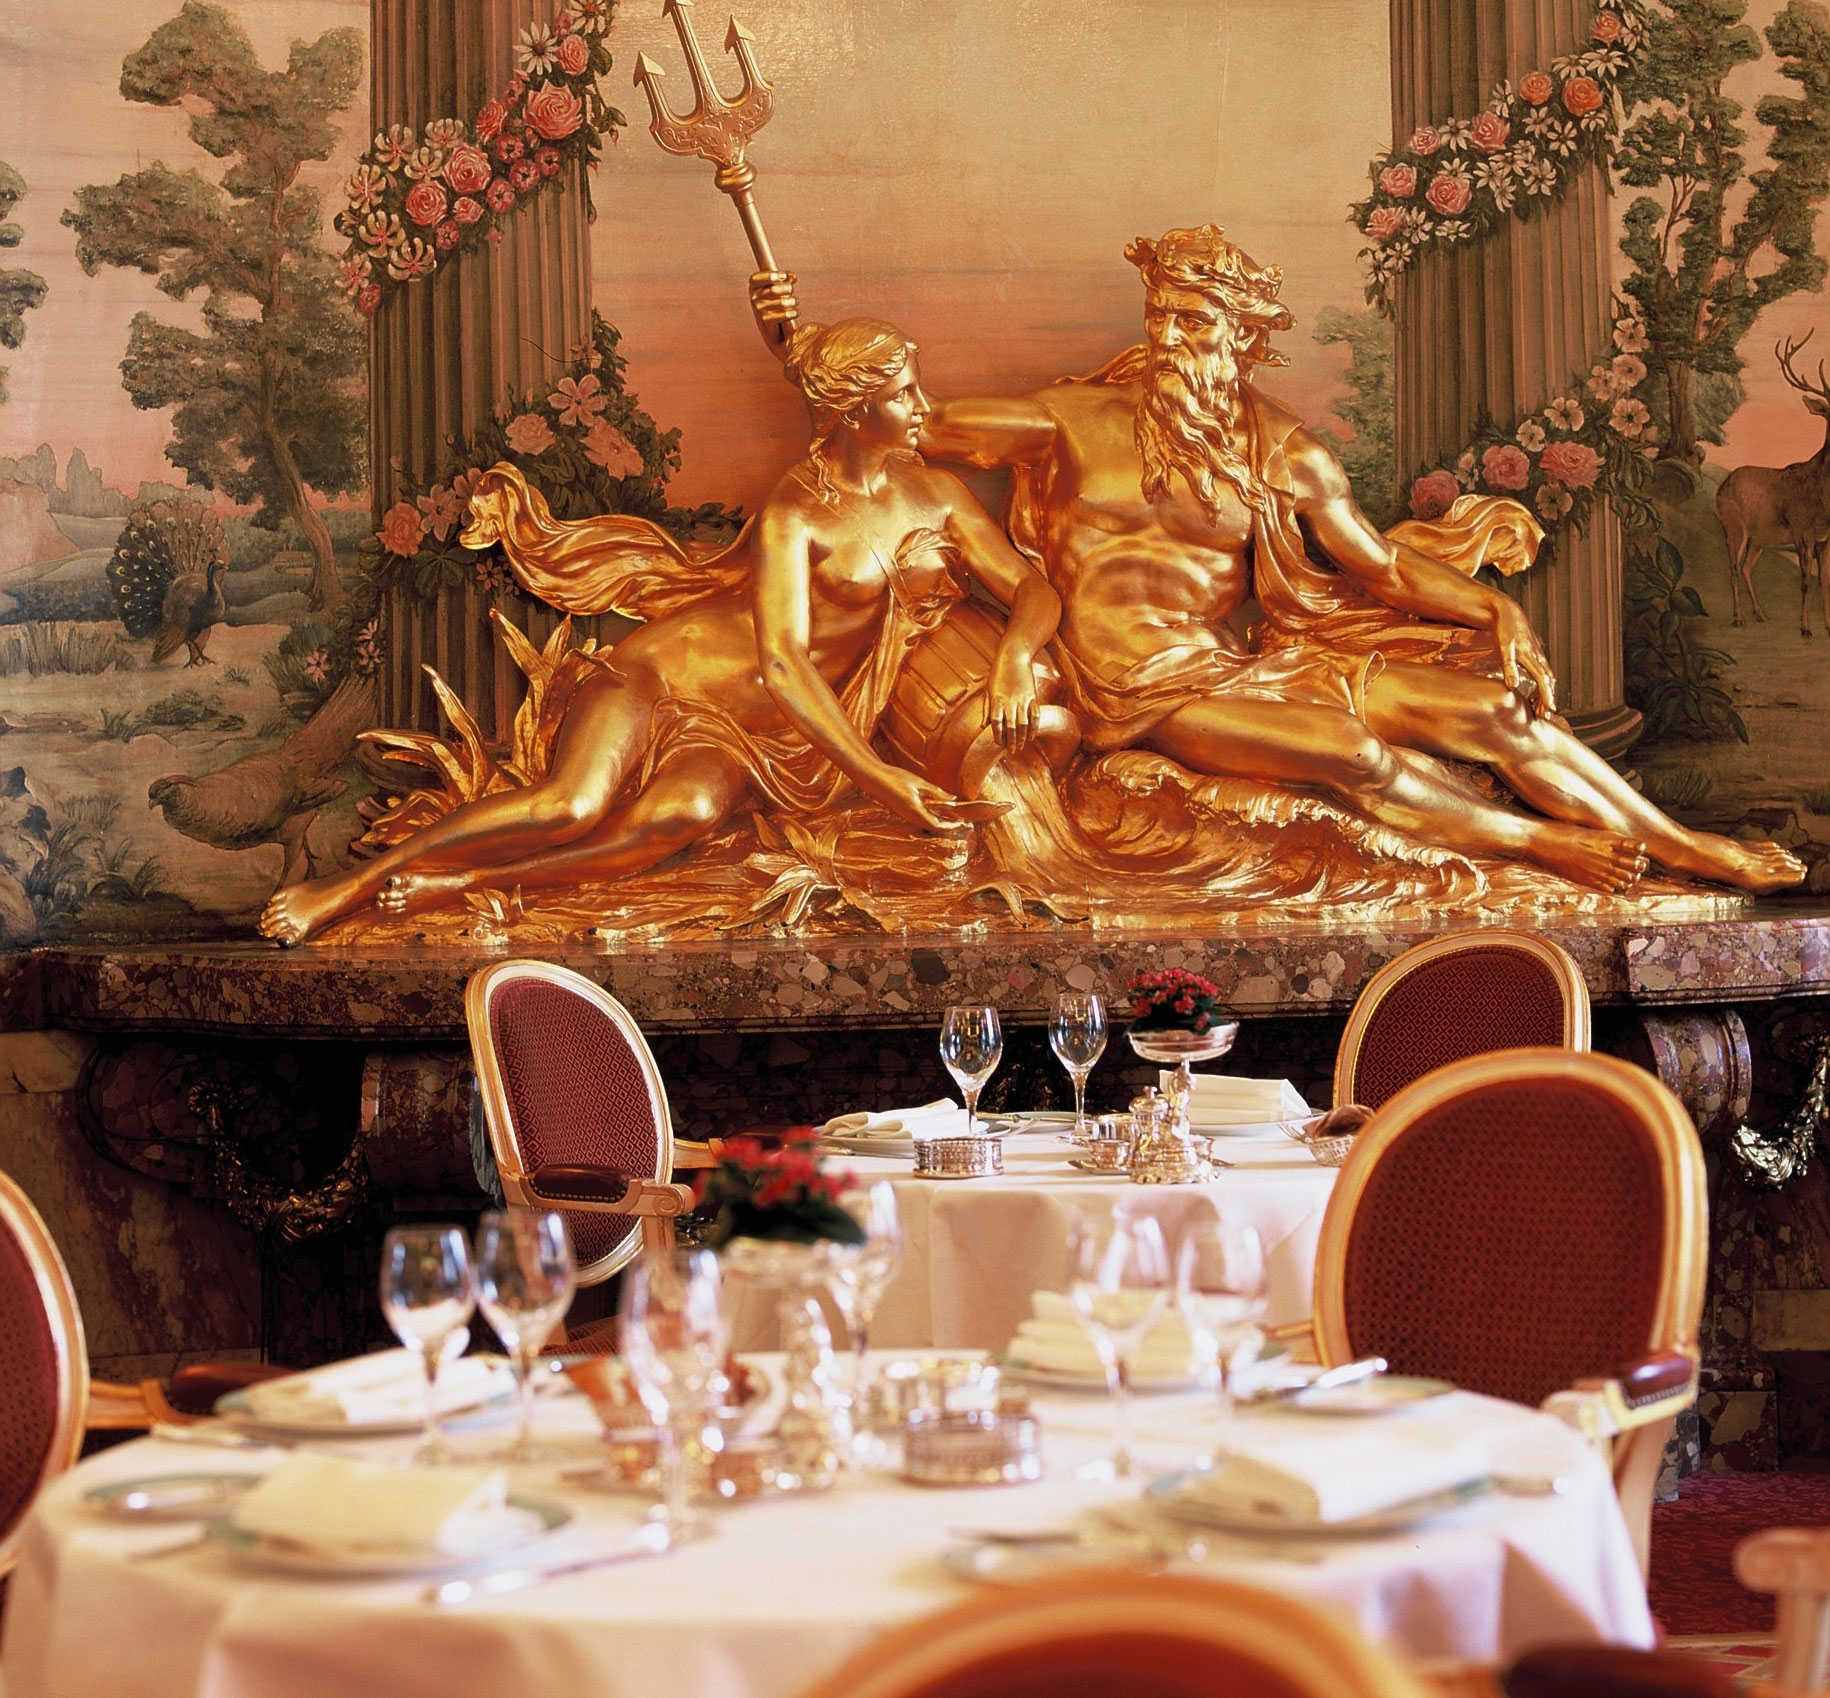 Reserve a table at The Ritz Restaurant - London